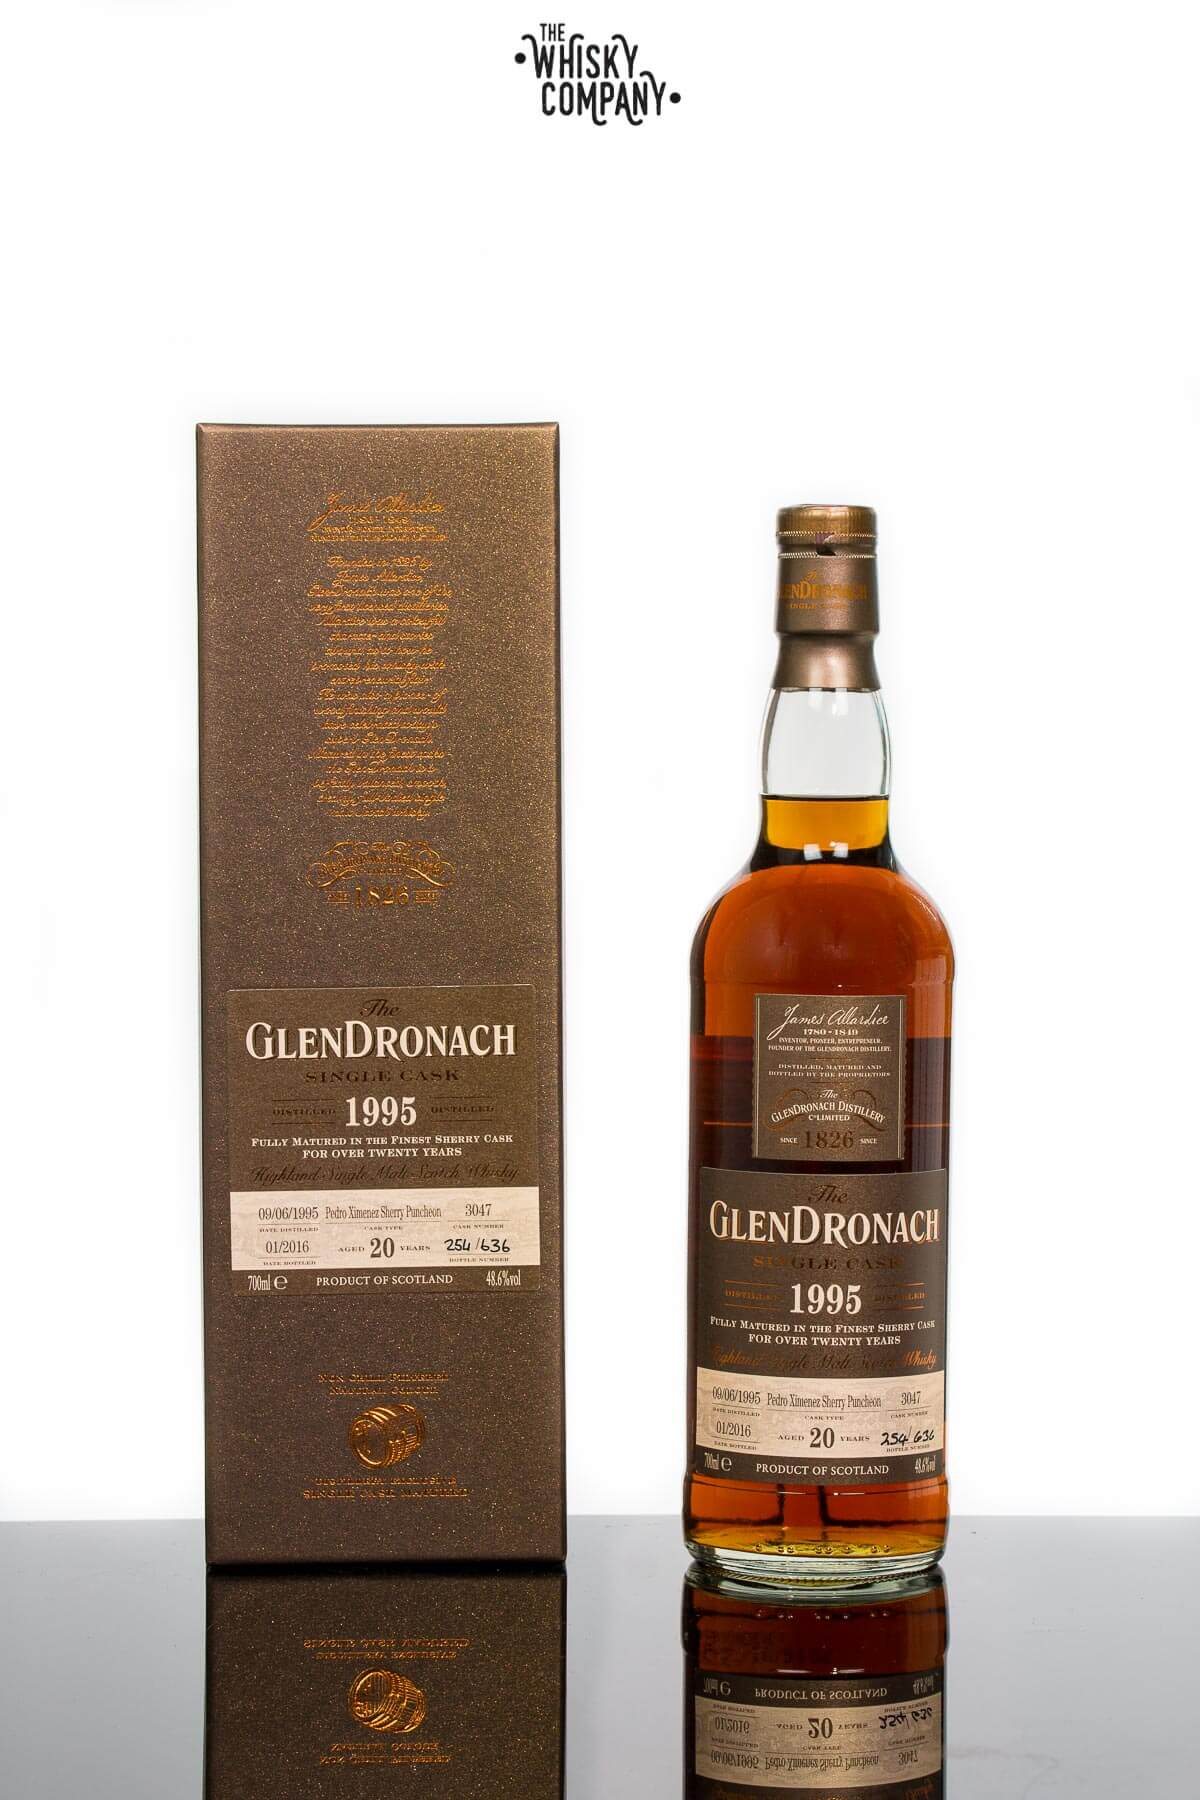 GlenDronach 1995 Single Cask Aged 20 Years Single Malt Scotch Whisky